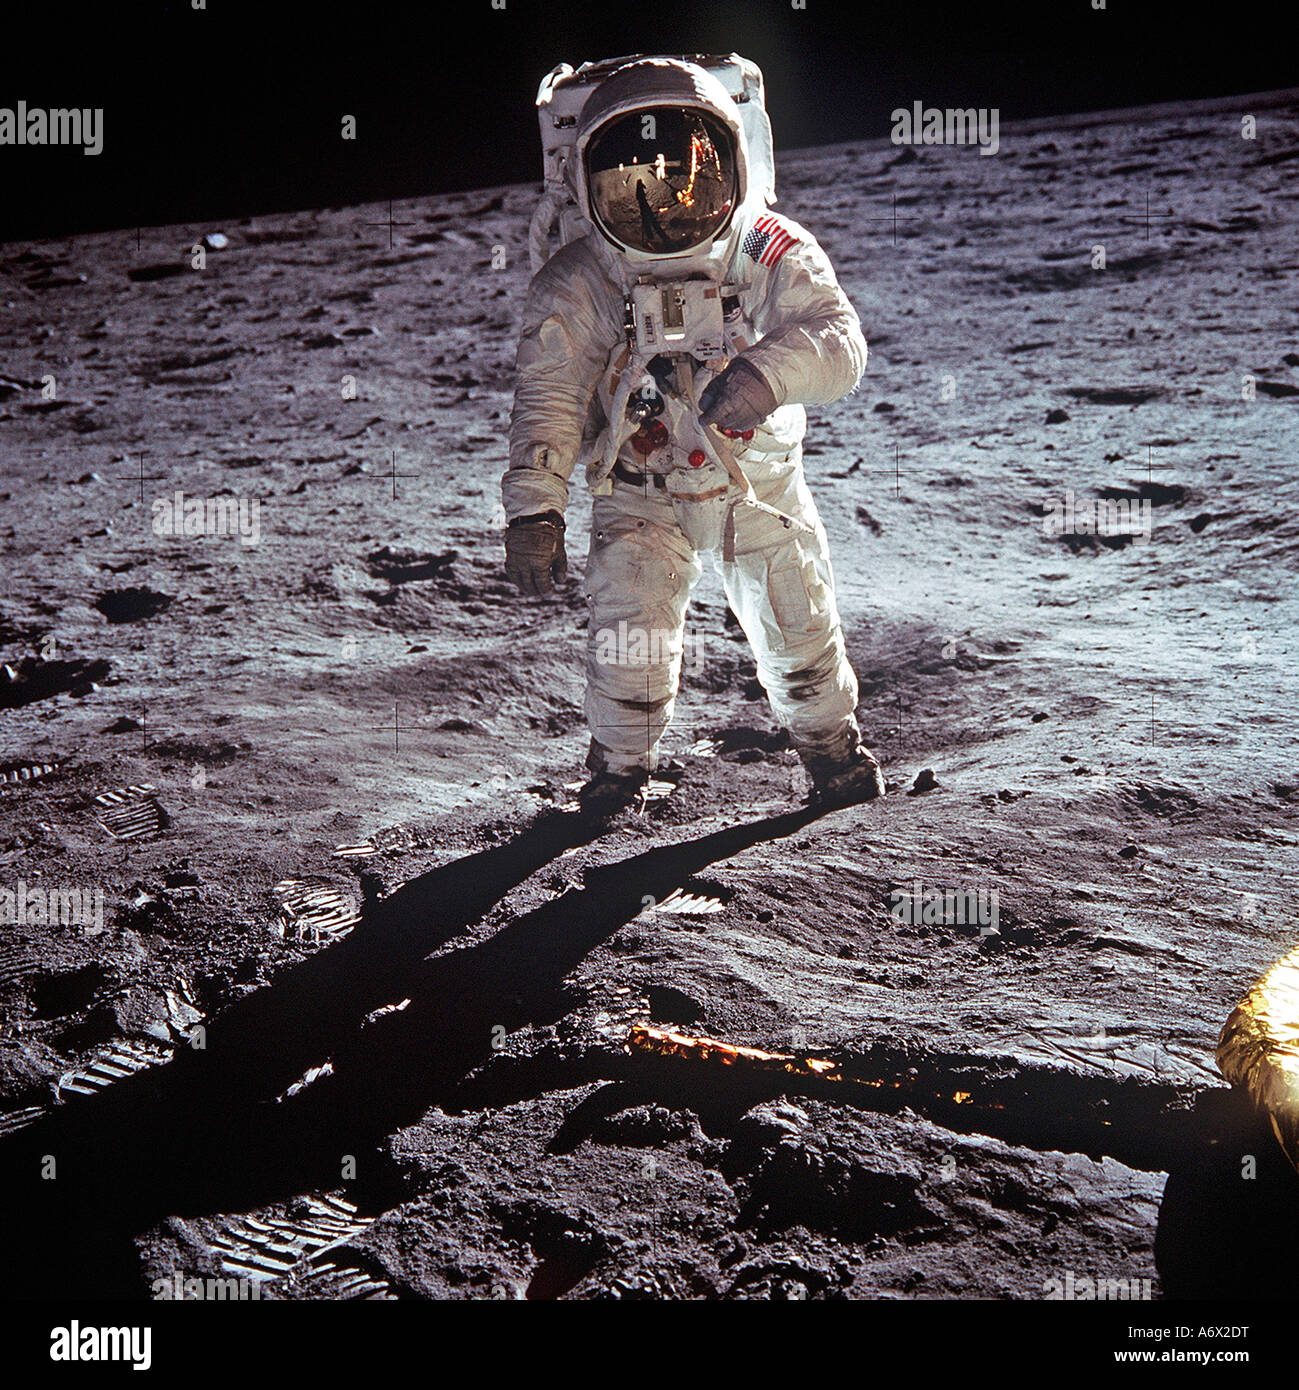 Astronaut Neil Armstrong photographed on moon  as mission commander for the Apollo 11 moon landing on 20 July 1969 - Stock Image